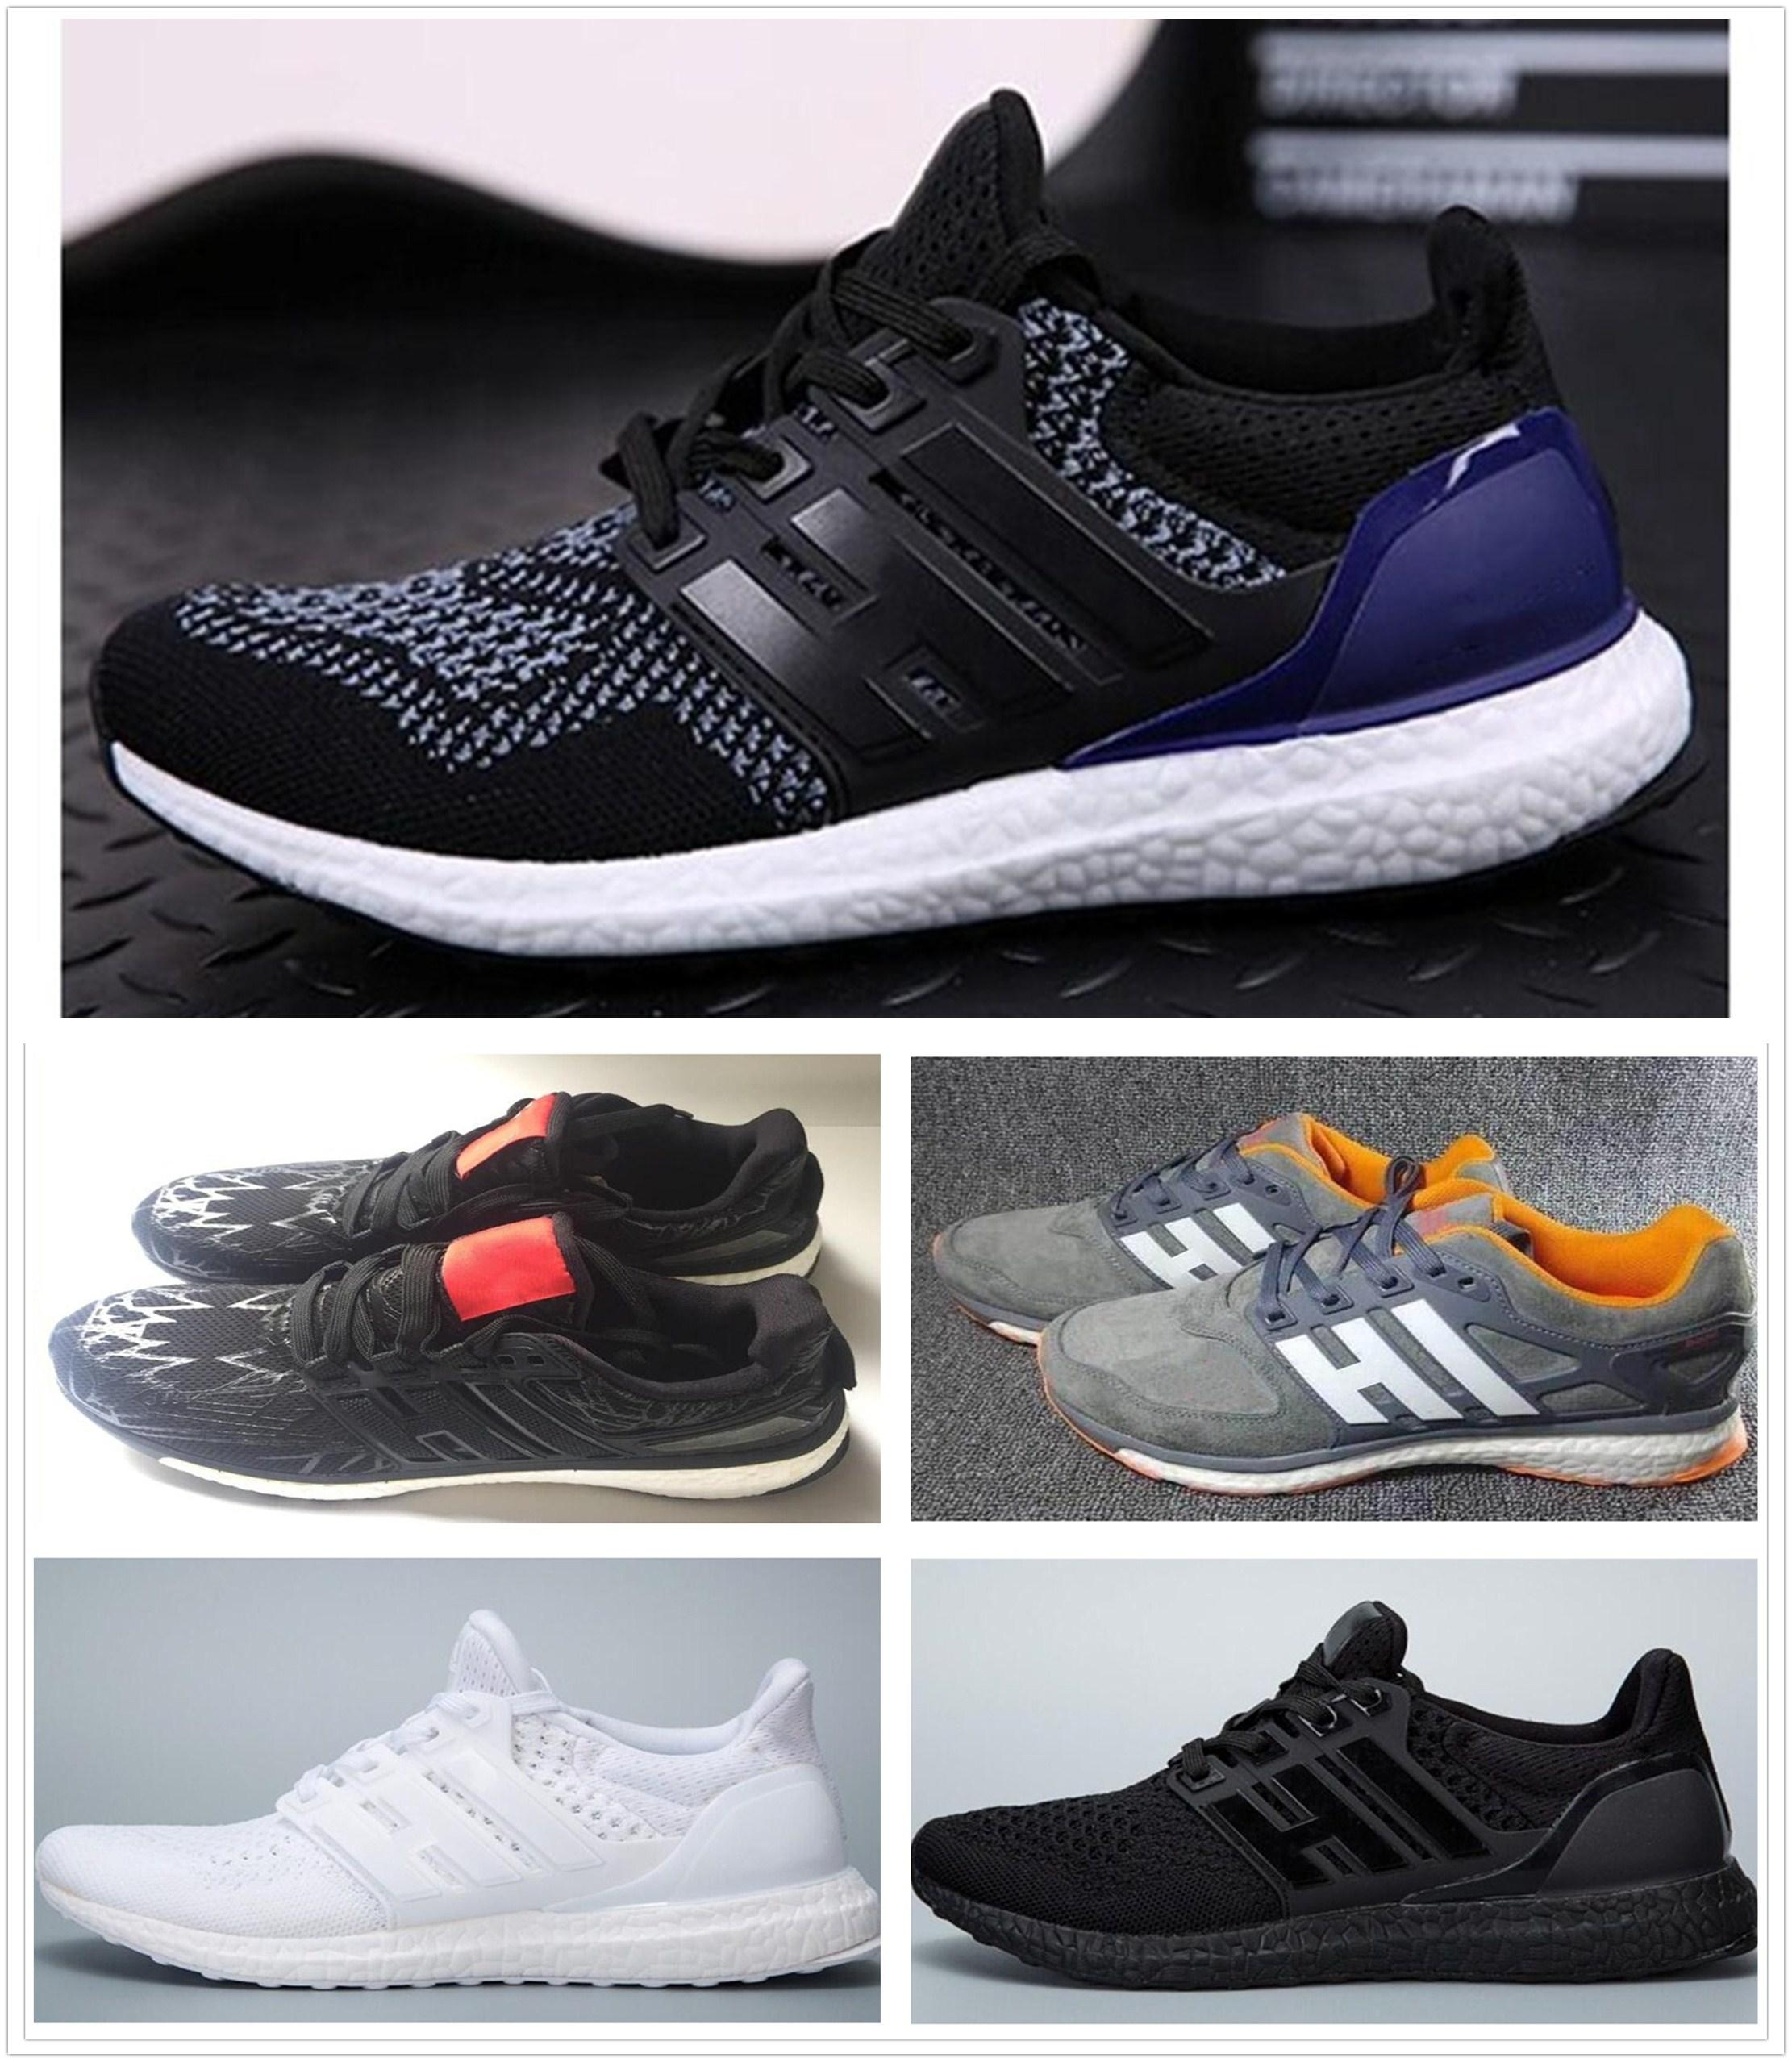 42d4483bef5 2016 Ultra Boost ATR Mid Trace Khaki CG3001 Running Shoes Real Boost  Endiess Energy Sneakers For Mens Oreo MID Boots Ultraboos Childrens Running  Gear ...